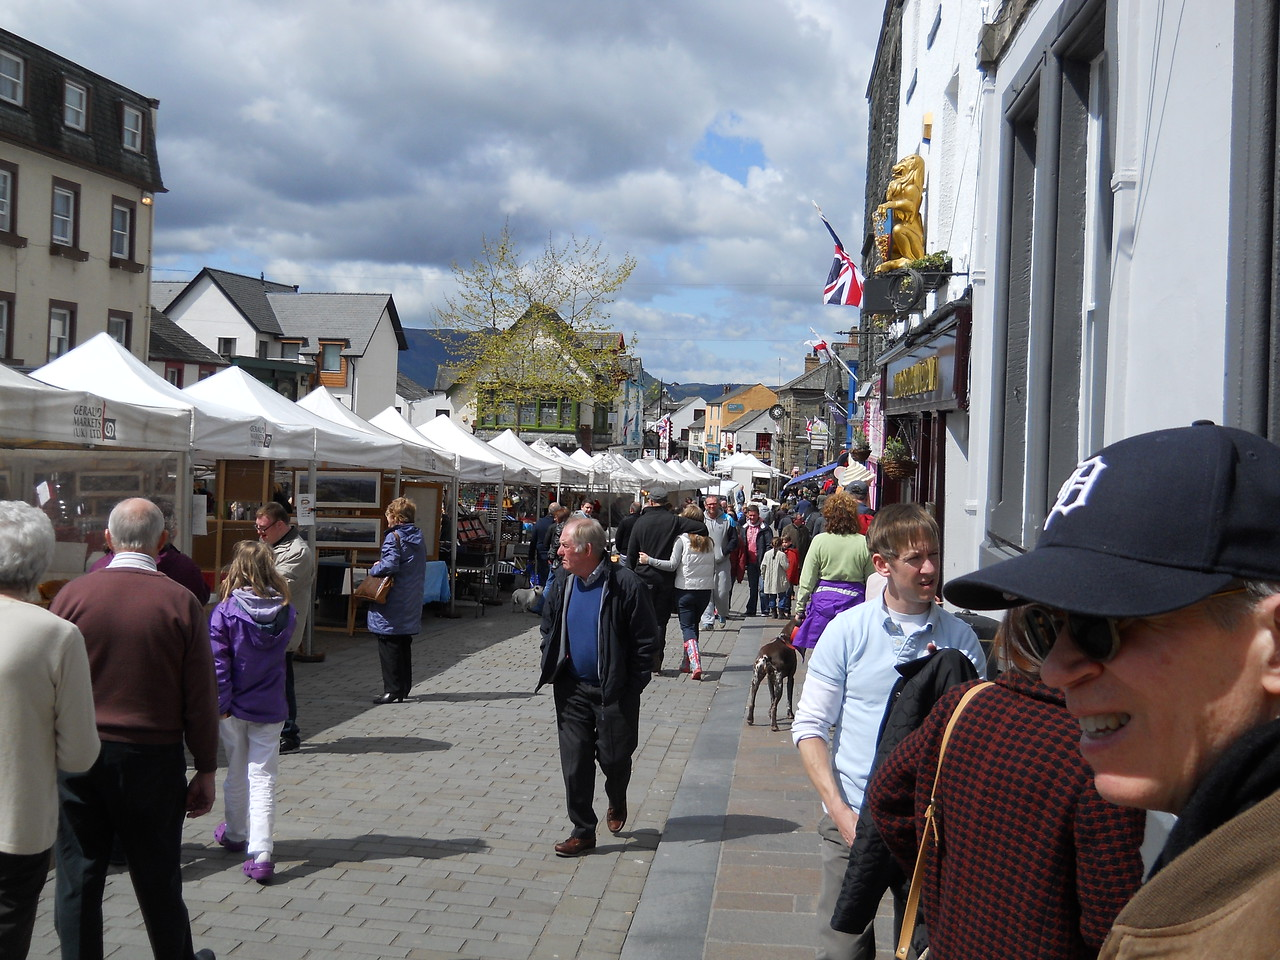 Saturday, May 12 - Downtown Keswick on market day